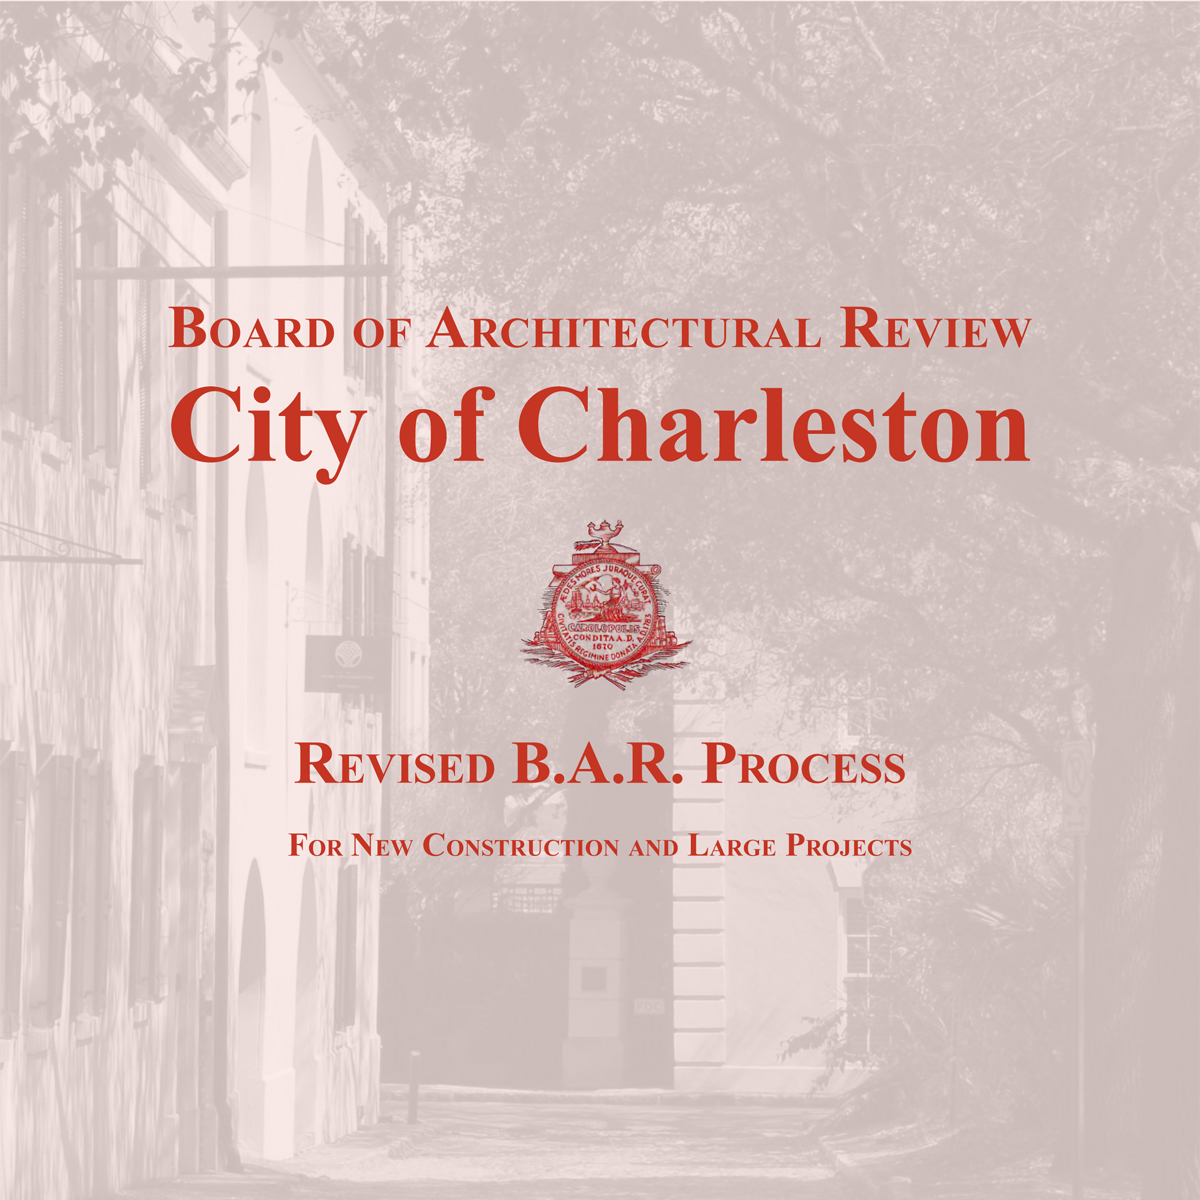 Cover Image: Revised B.A.R. Process For New Construction and Large Projects